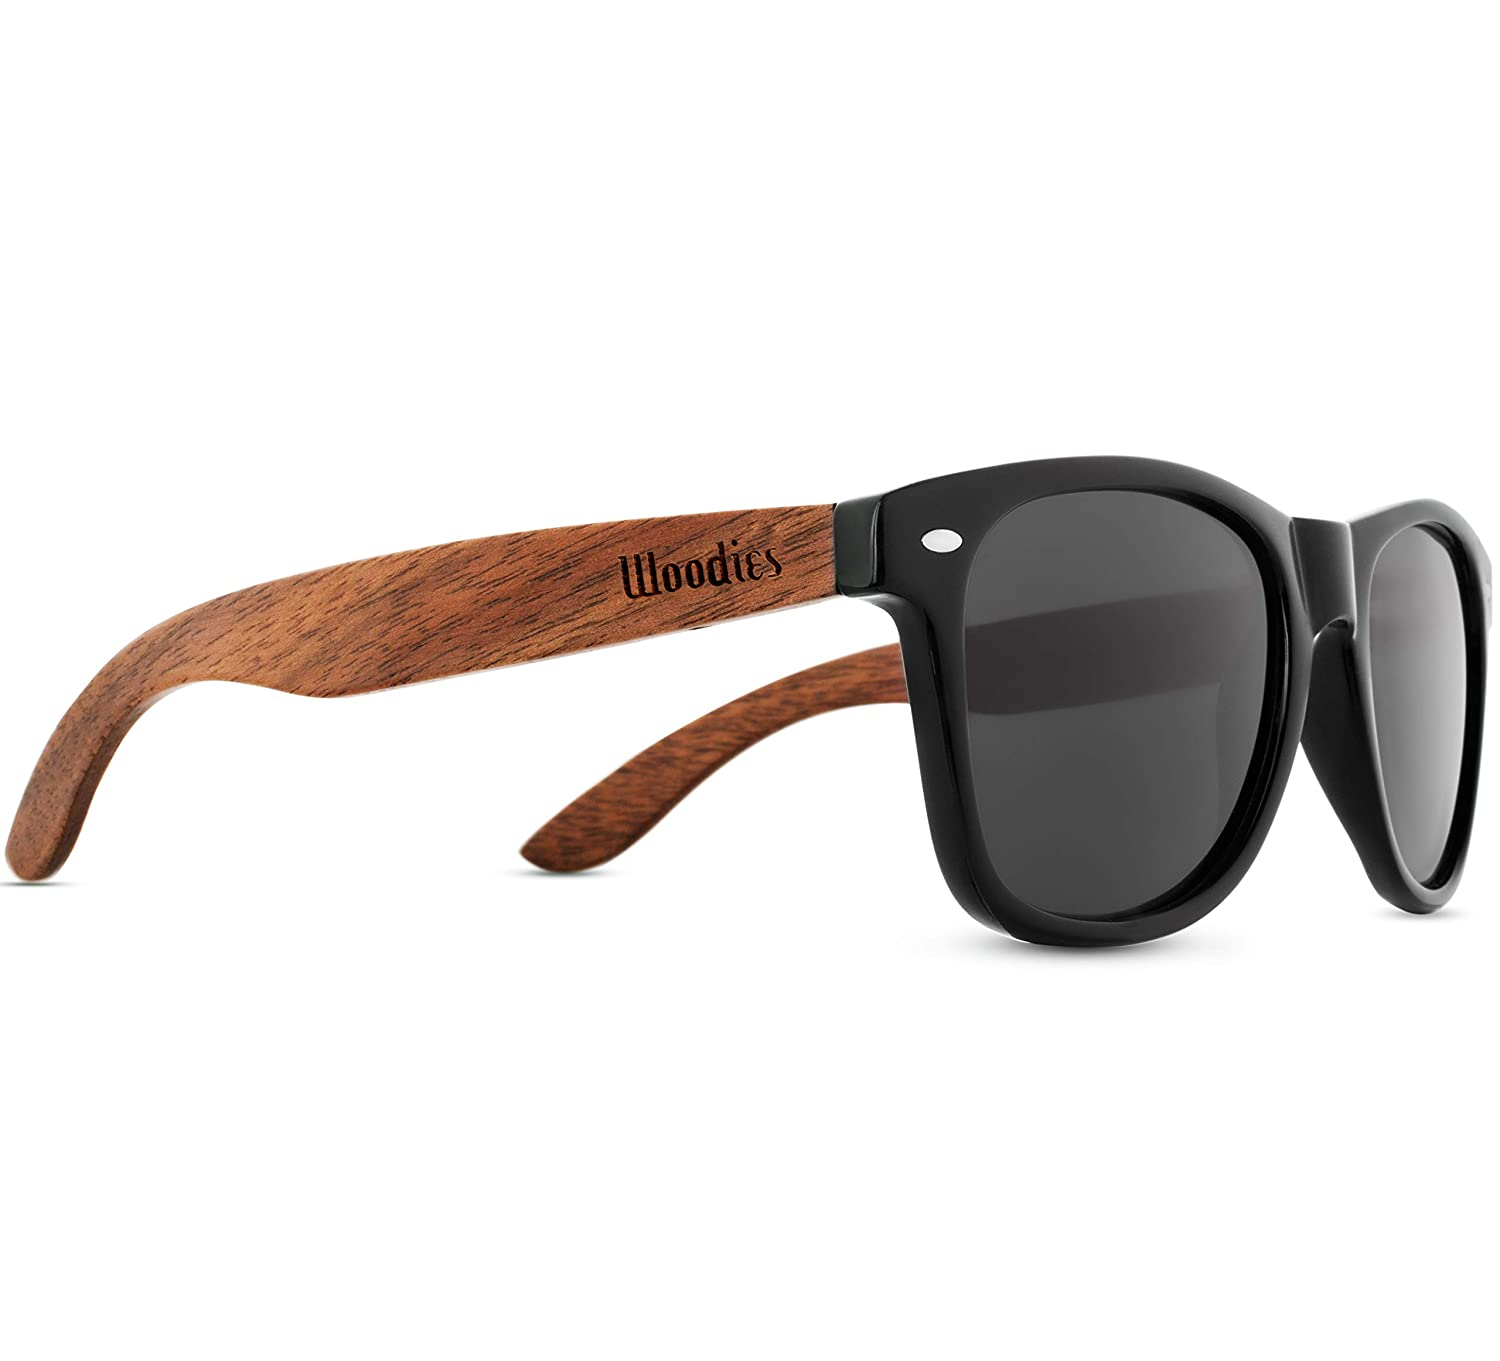 2f438b05bea Amazon.com  WOODIES Walnut Wood Sunglasses with Polarized Lens in Wood  Display Box for Men or Women  Clothing